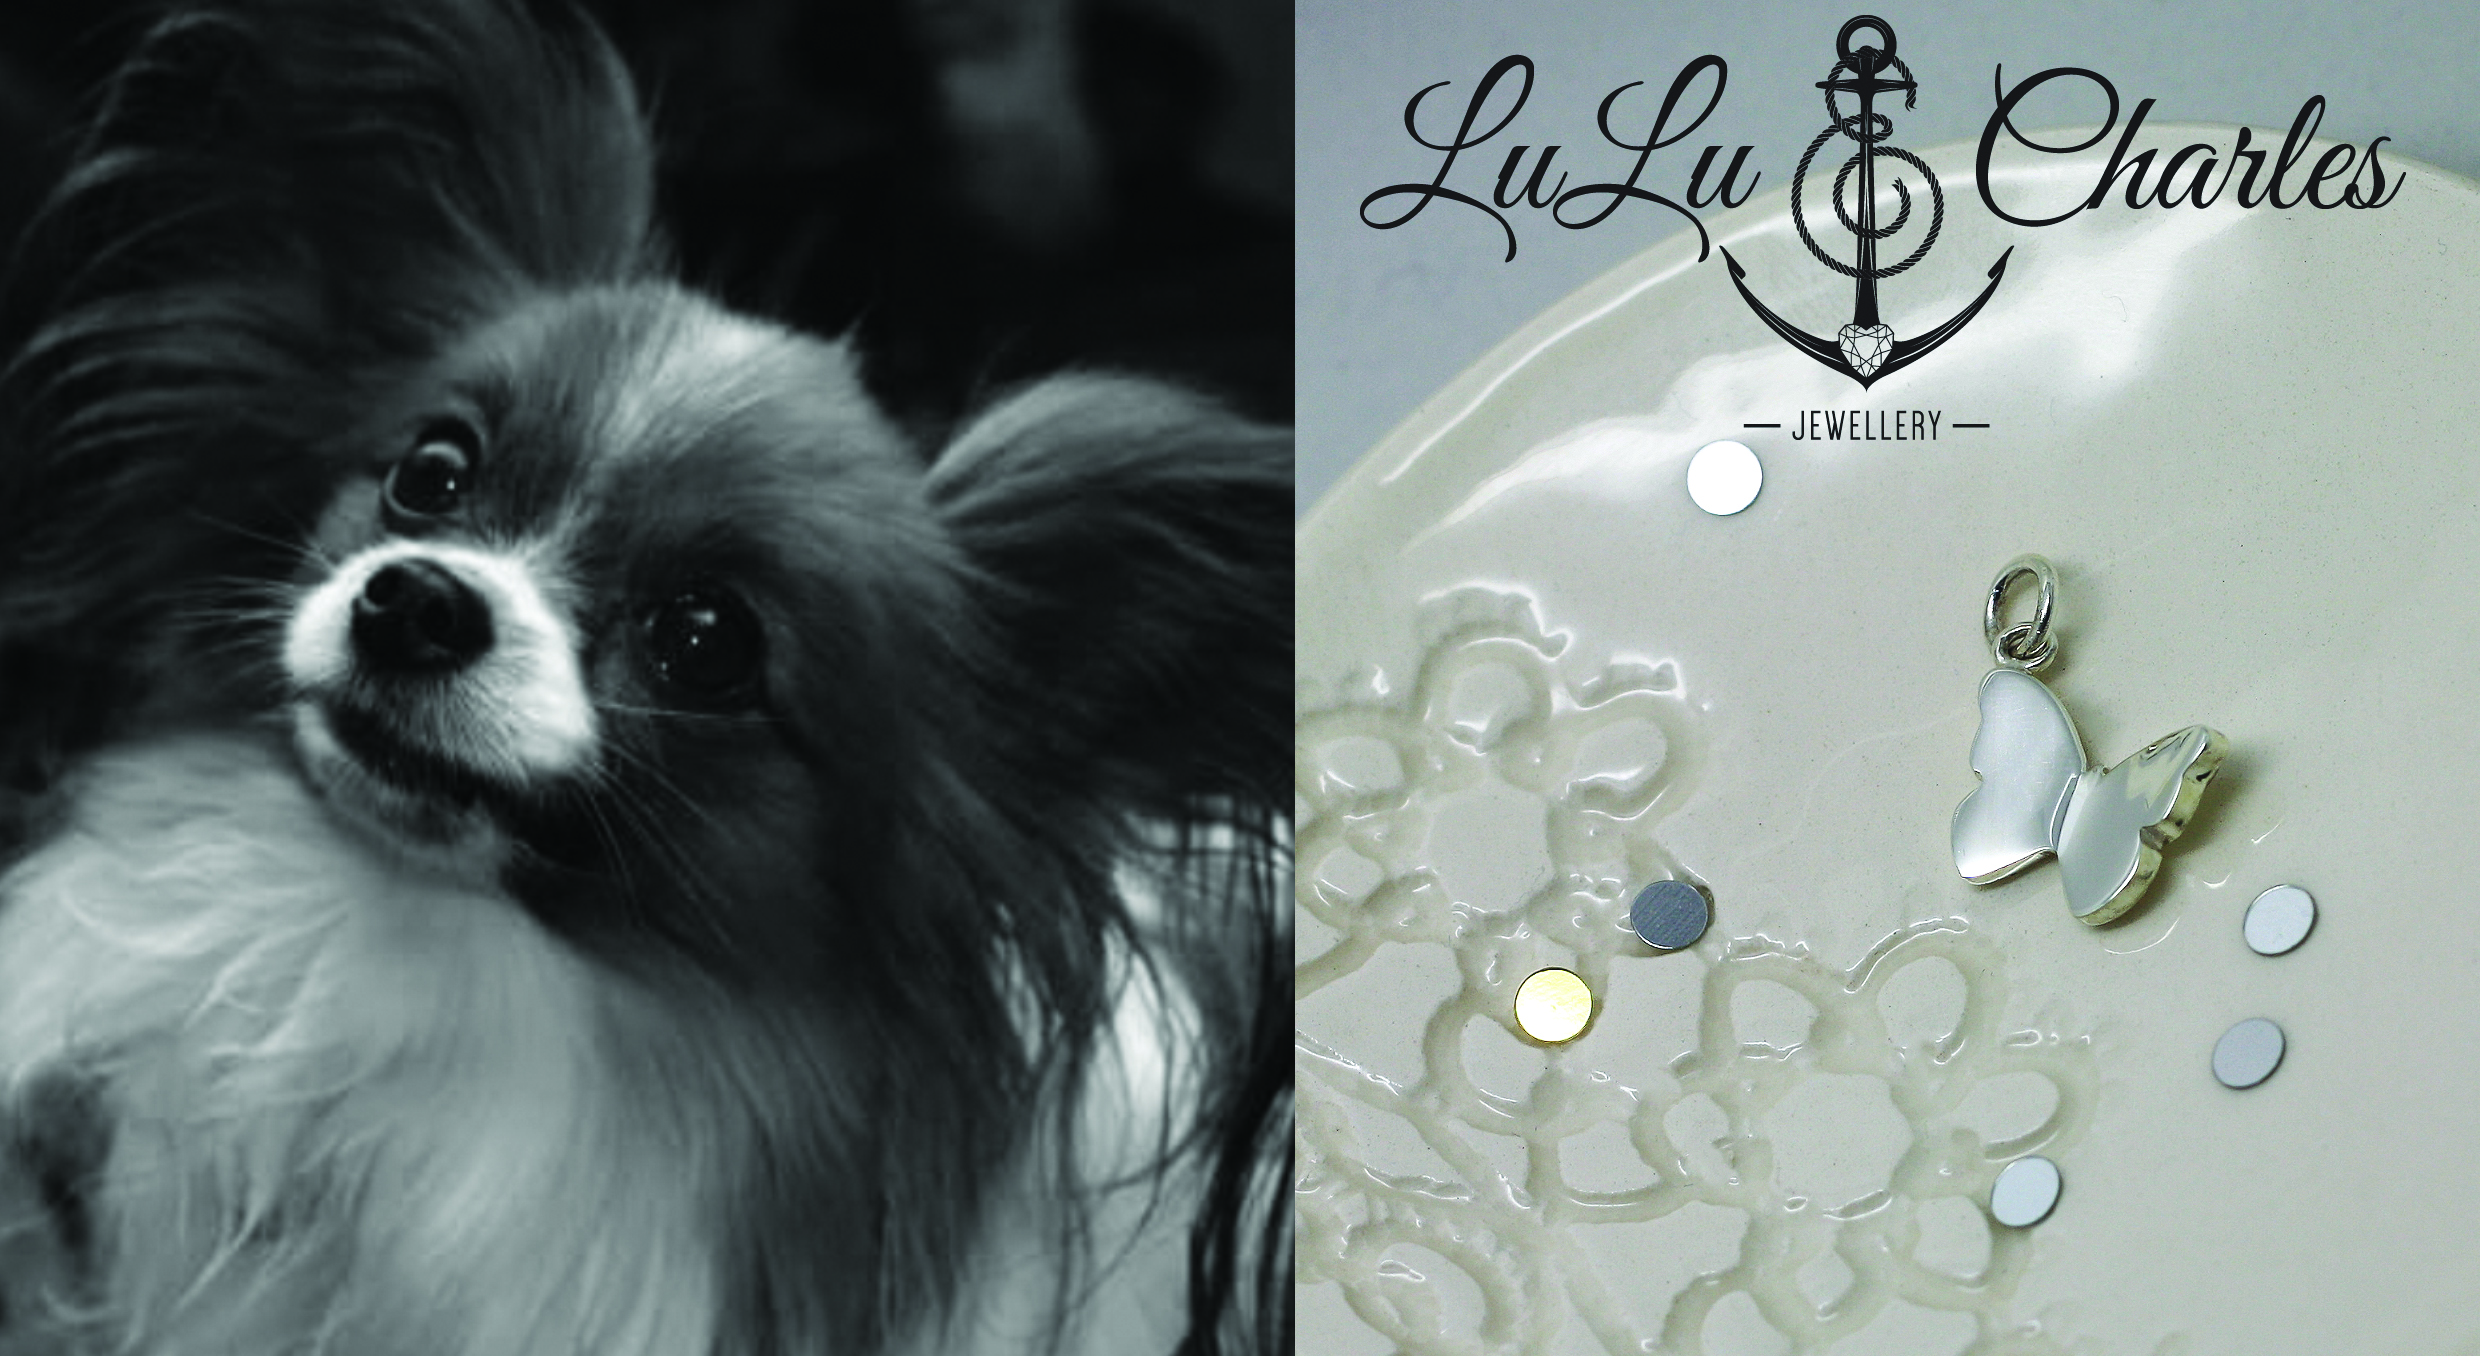 Handmade Bespoke Sterling Silver Pet Memorial Necklace, contacting cremation ashes by lulu charles jewellery uk